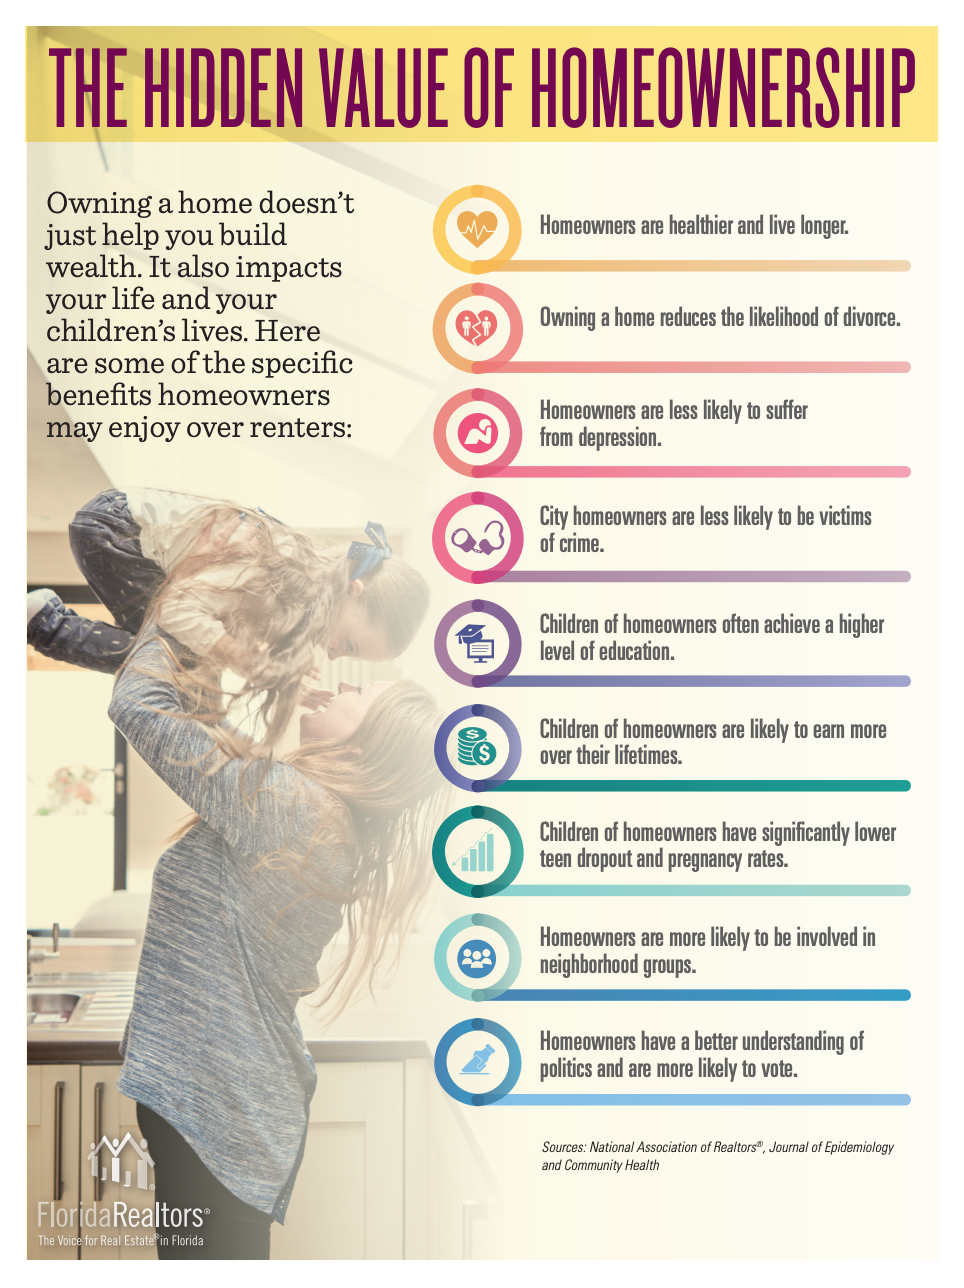 The Hidden Value of Homeownership